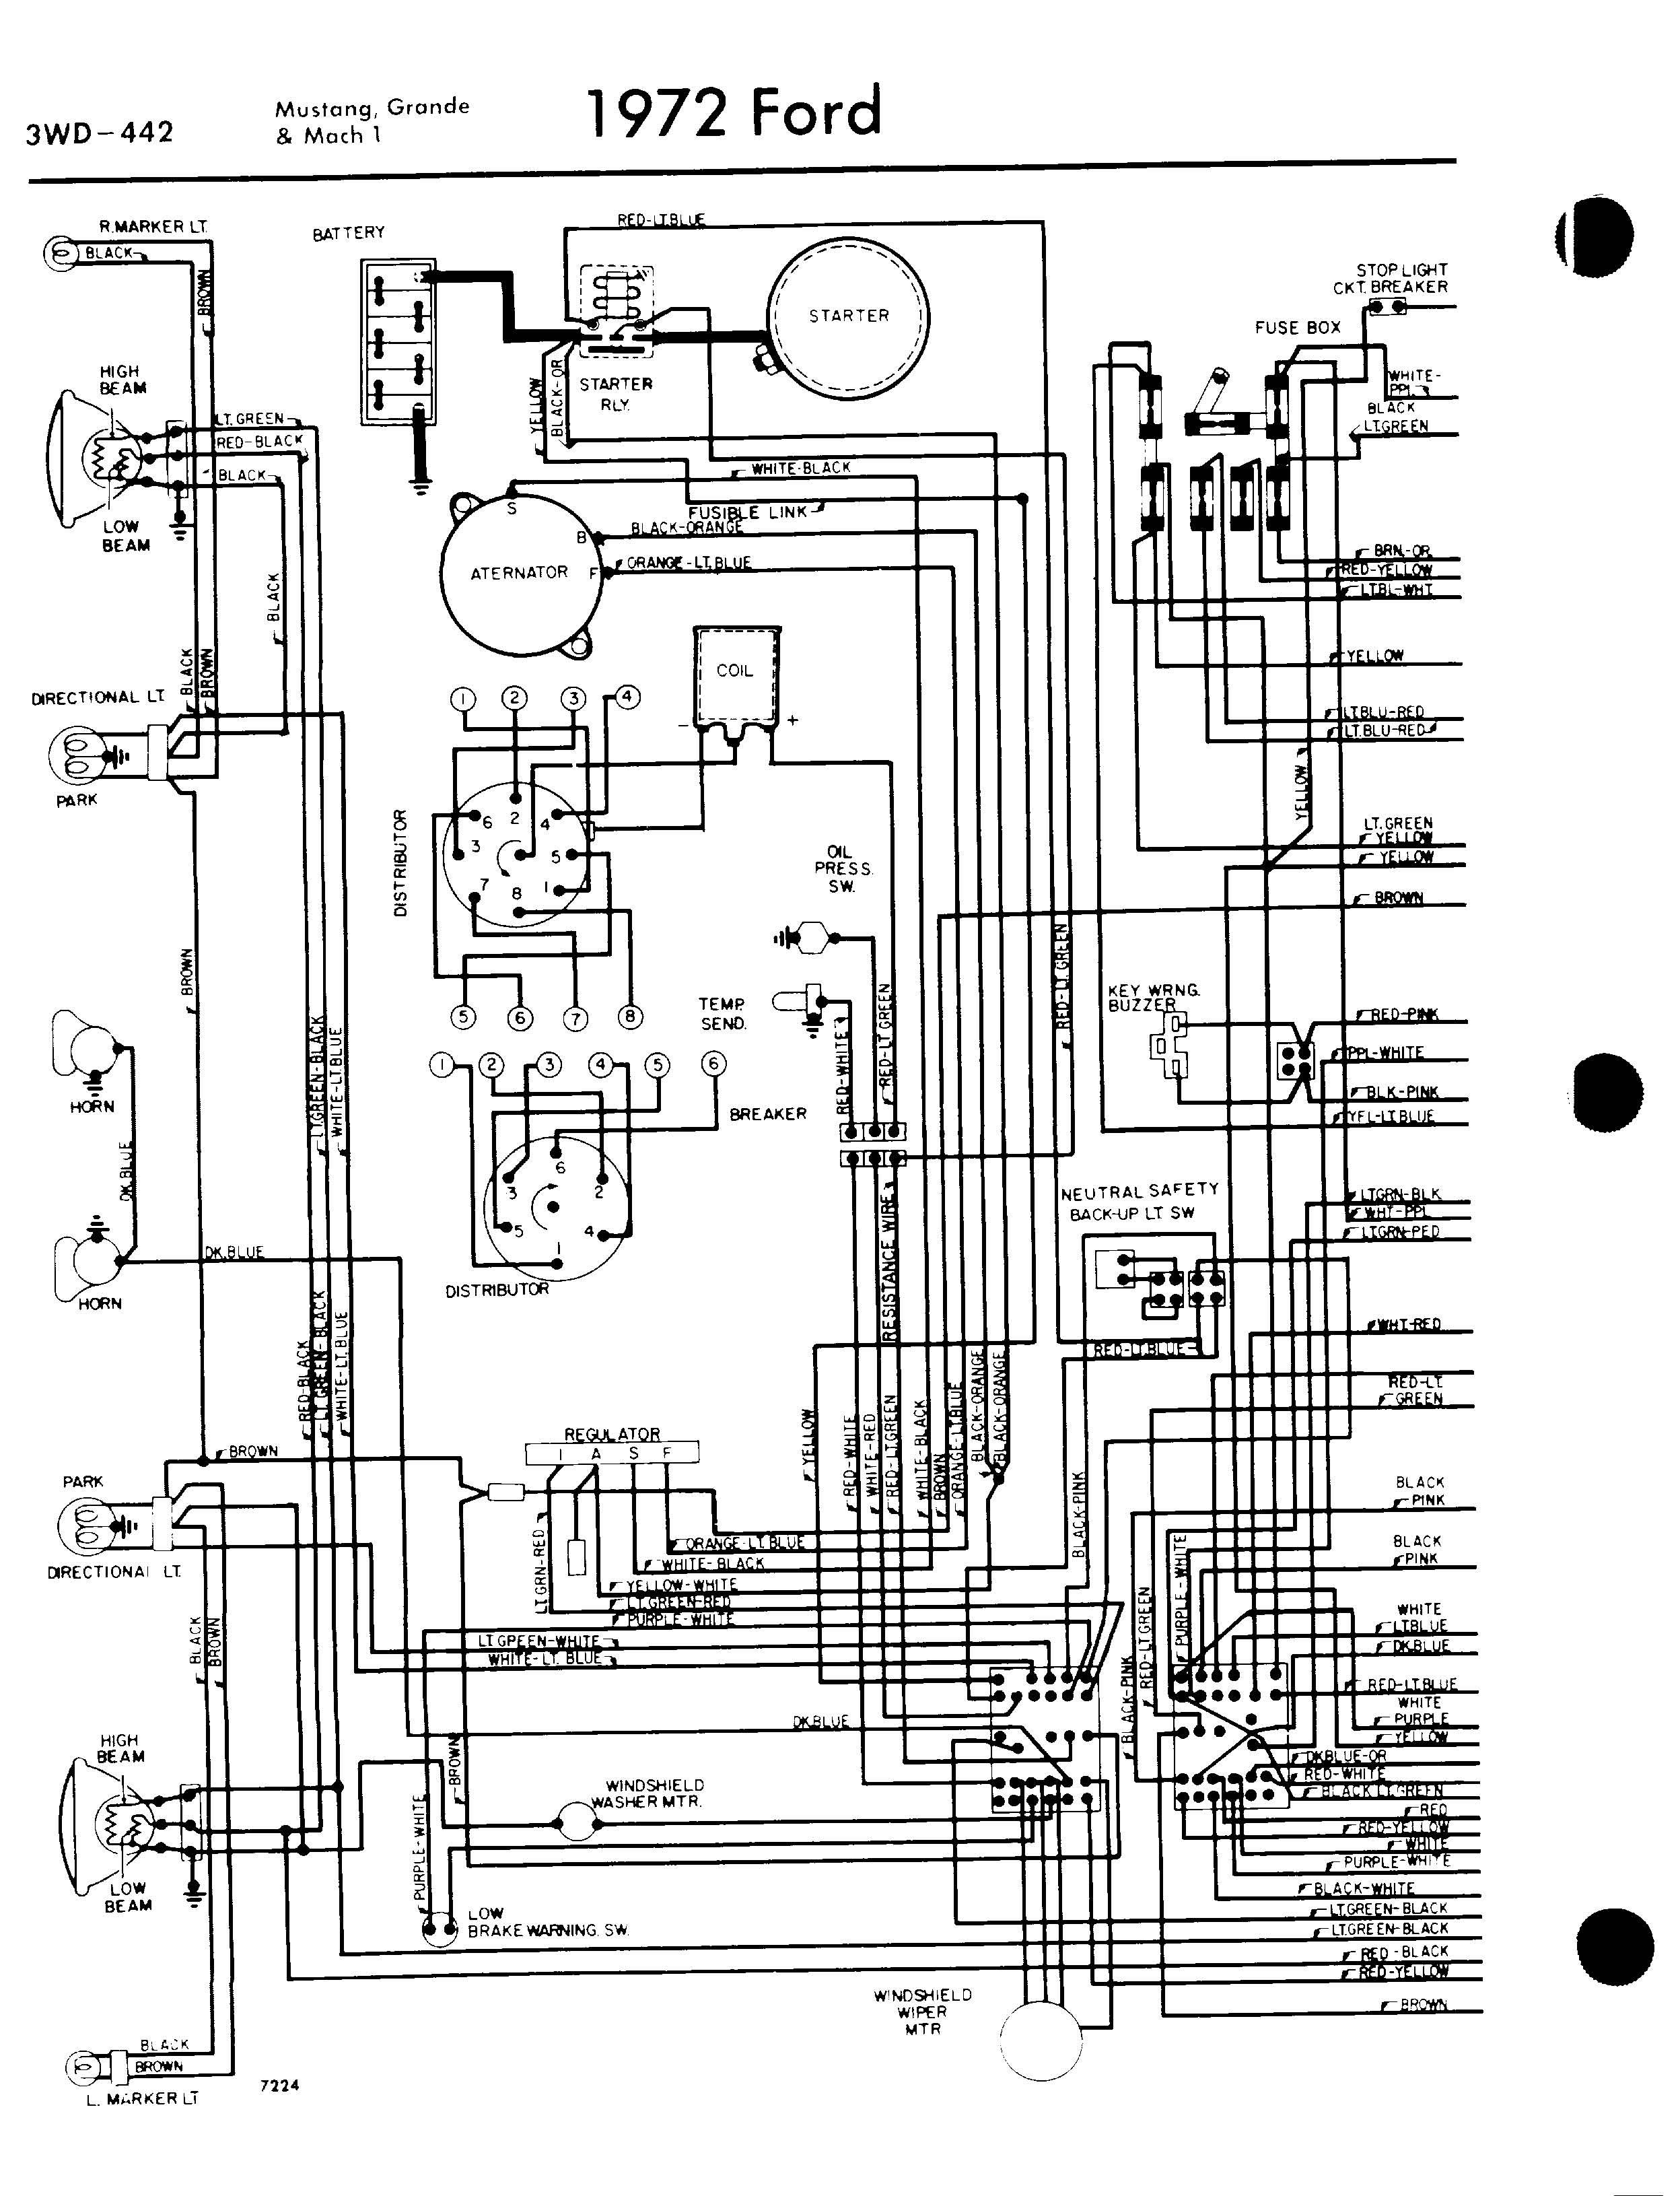 71af7a58e095e6a7716b32f1b23e8bd2 72 mach1 alternator wire harness diagram yahoo search results 1969 Mustang Wiring Diagram PDF at suagrazia.org